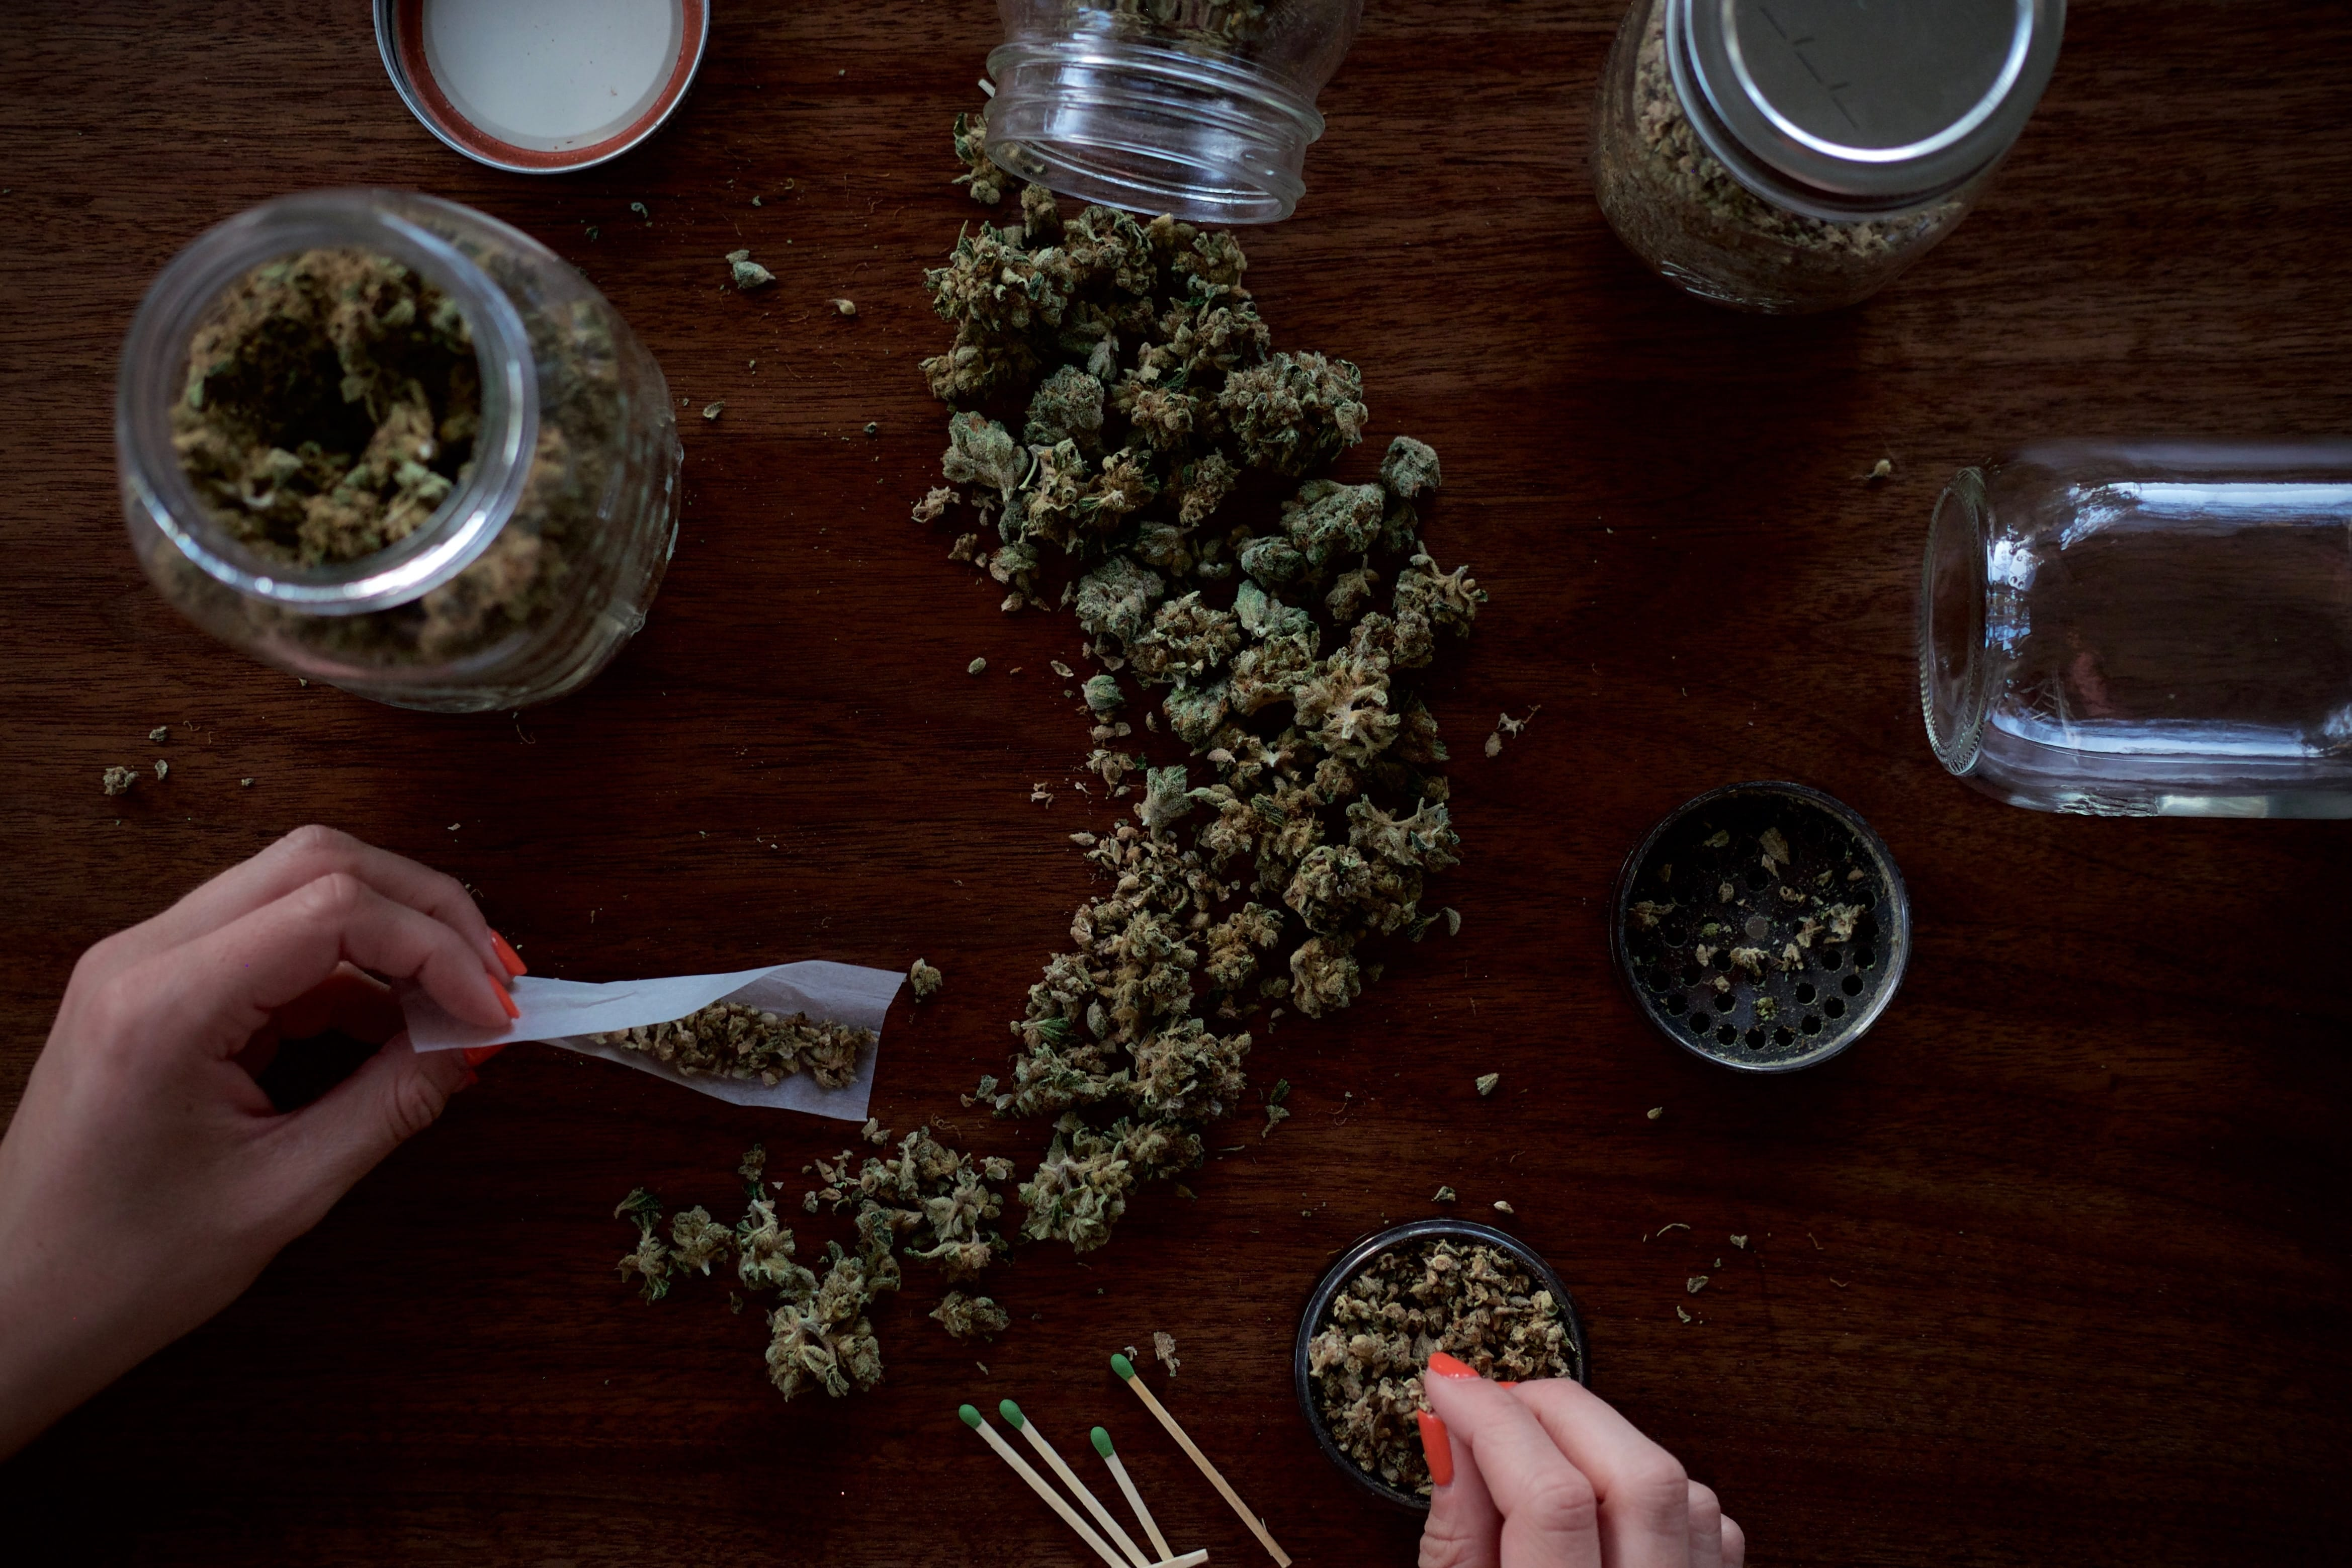 Woman with rolling paper and marijuana on brown table; image by Wesley Gibbs, via Unsplash.com.